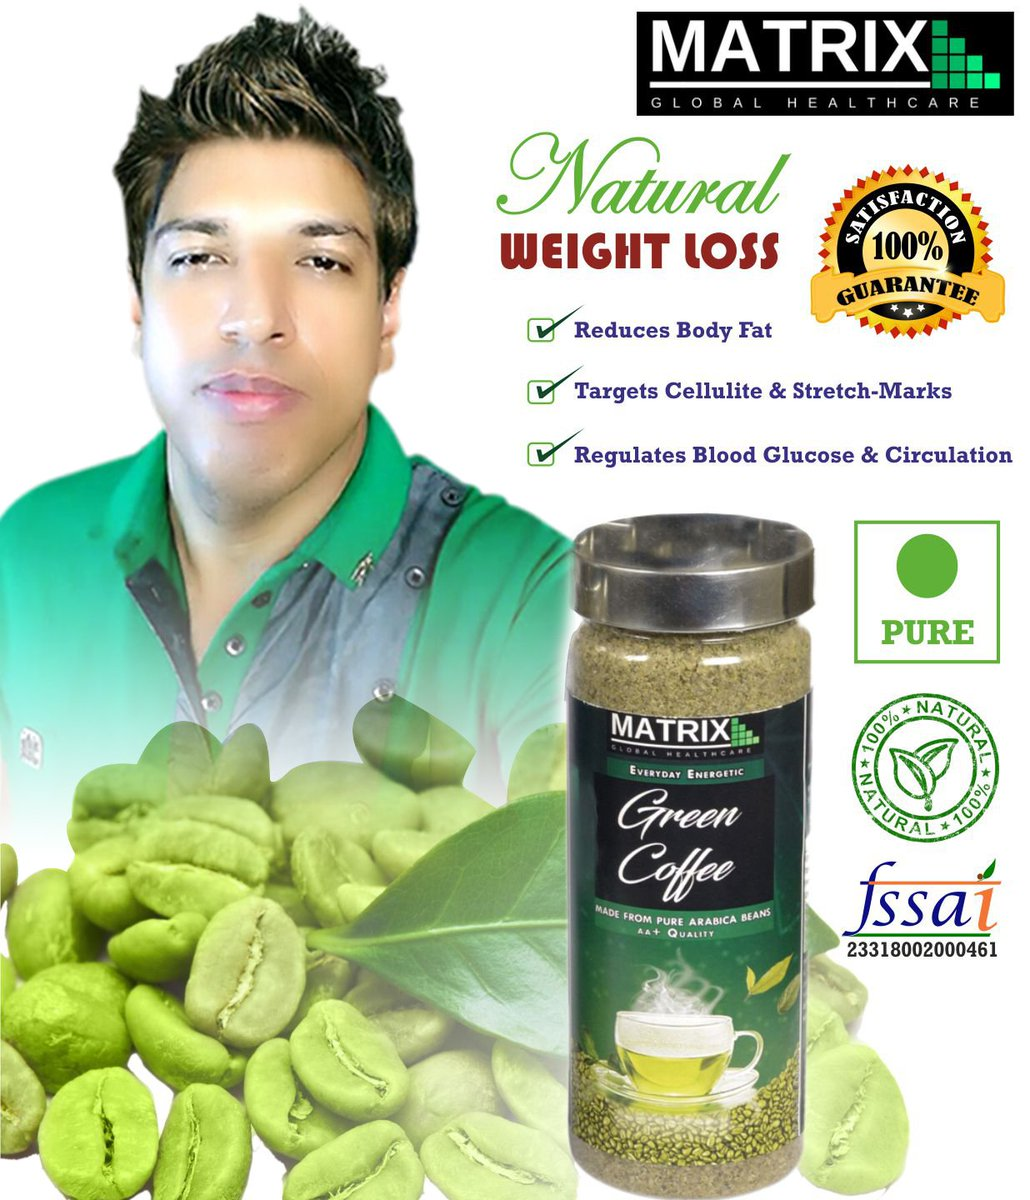 Matrix Green Coffee On Twitter 1 Weight Loss Formula For Both